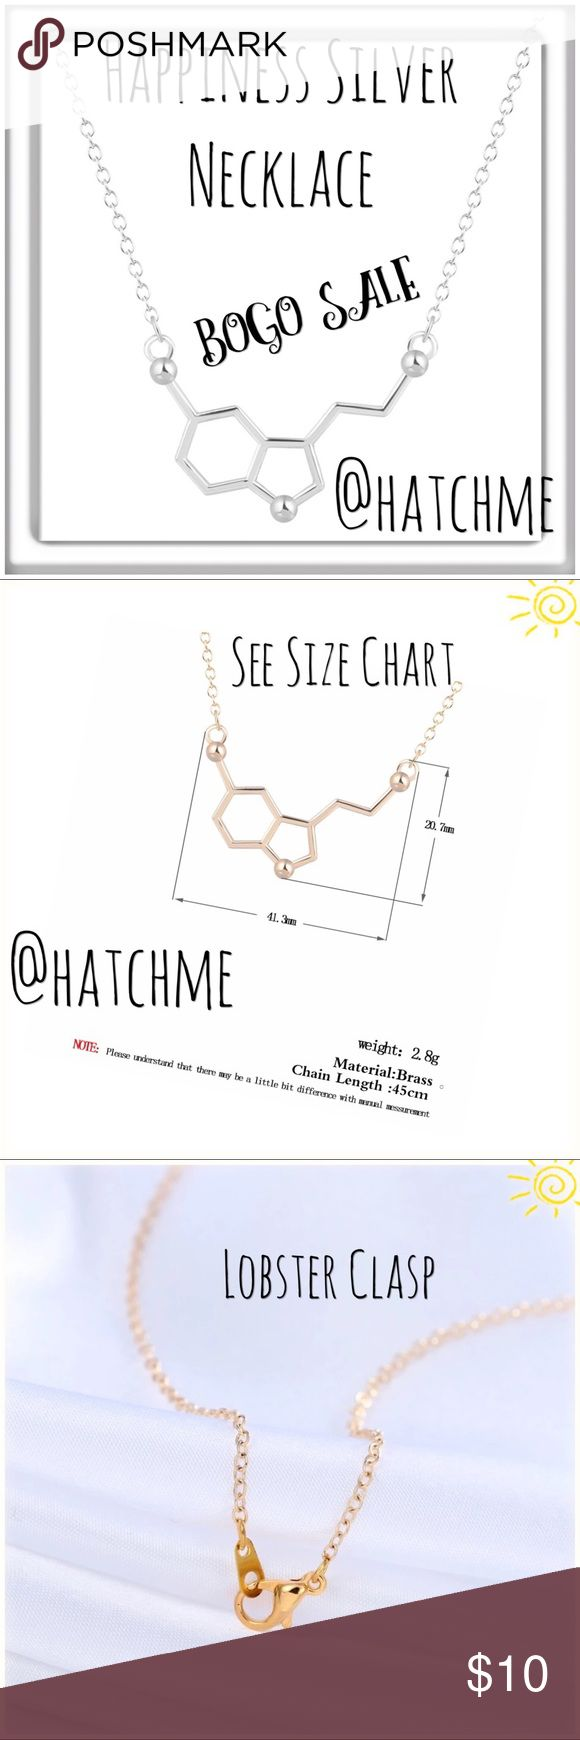 BOGO SALE Silver Chemistry Happiness Necklace. BOGO SALE Silver Chemistry Happiness Necklace Jewelry Necklaces